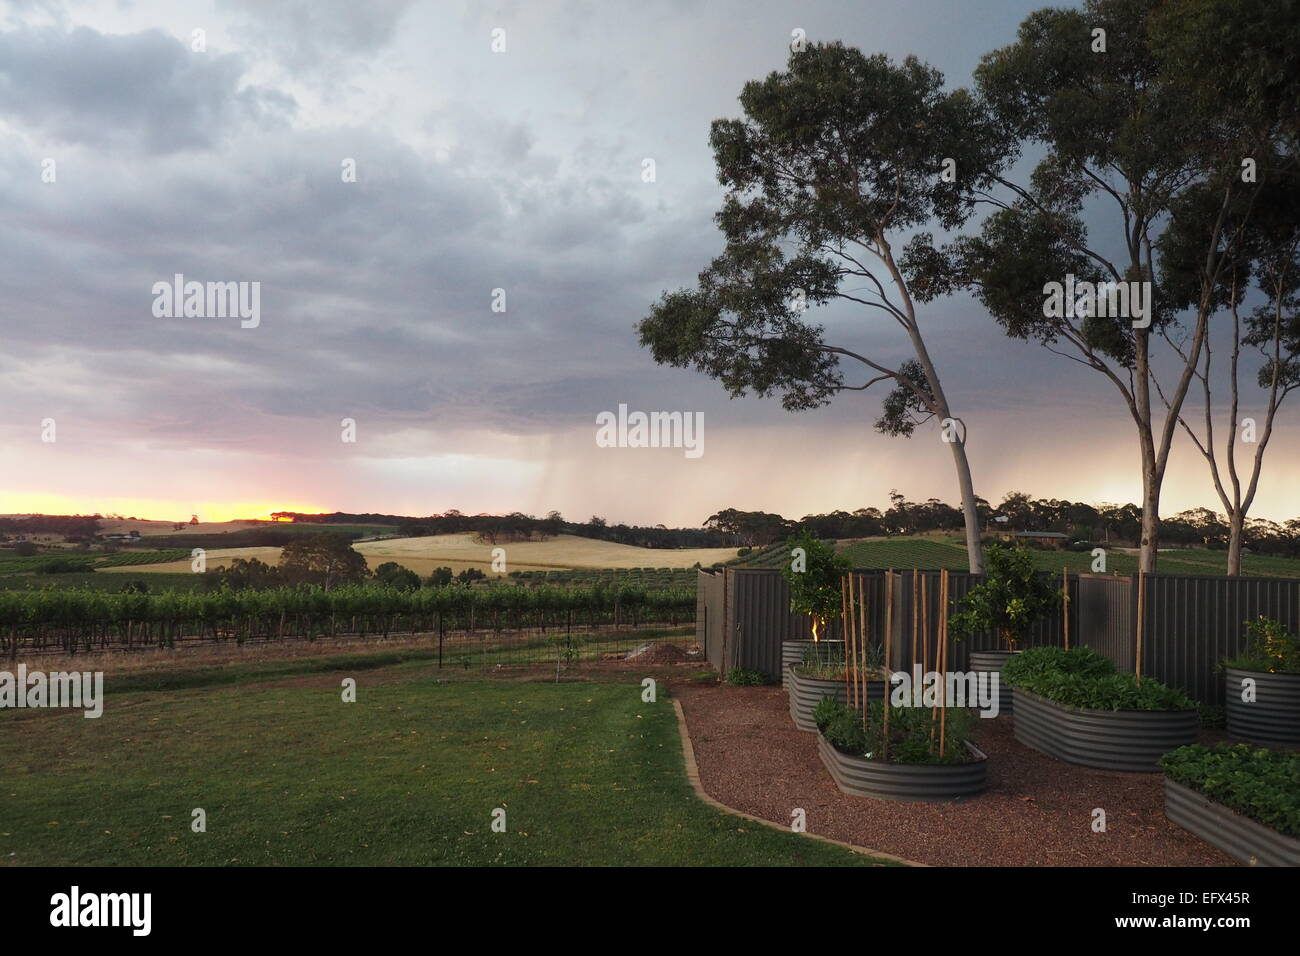 Sunset and distant rain on a vineyard in Clare Valley, South Australia. Stock Photo